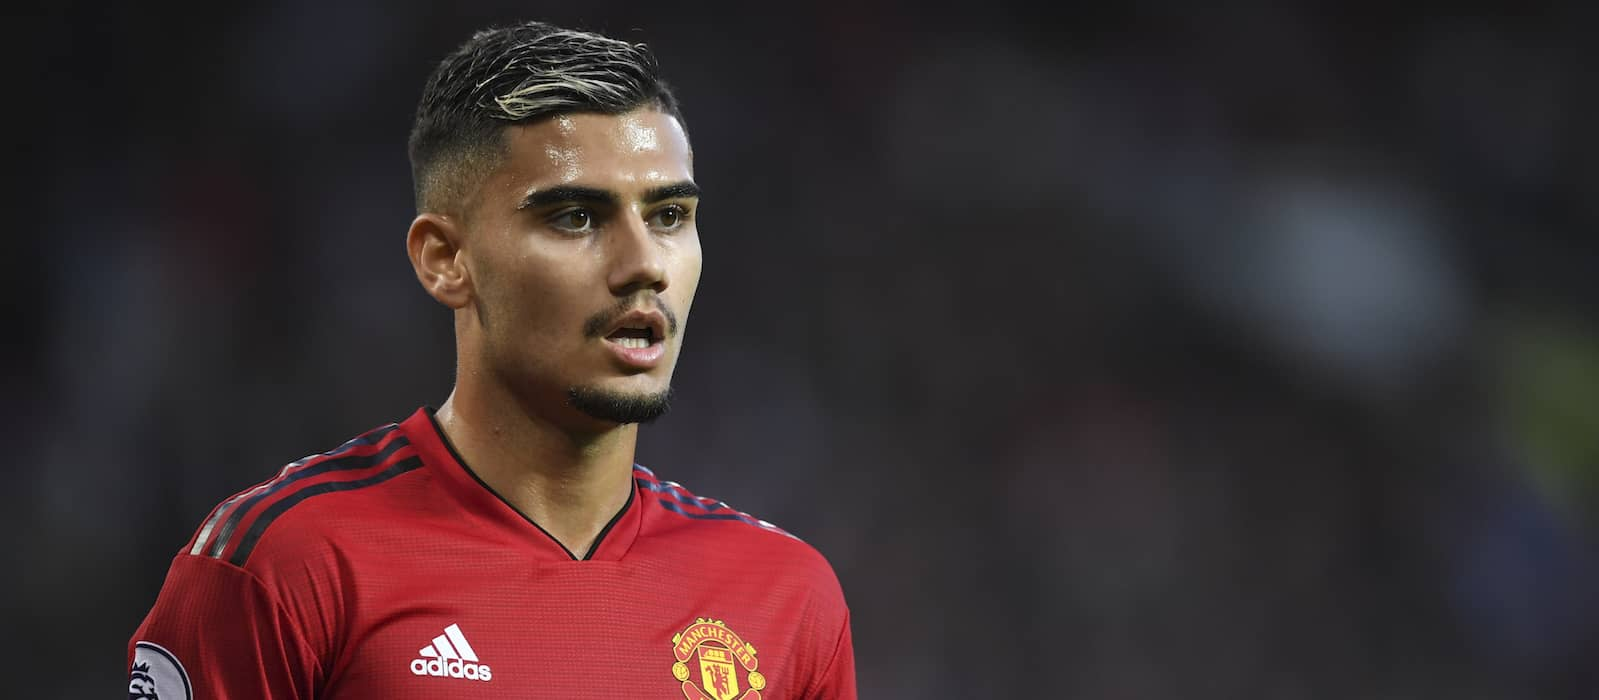 Ole Gunnar Solskjaer: Andreas Pereira will learn from his mistake